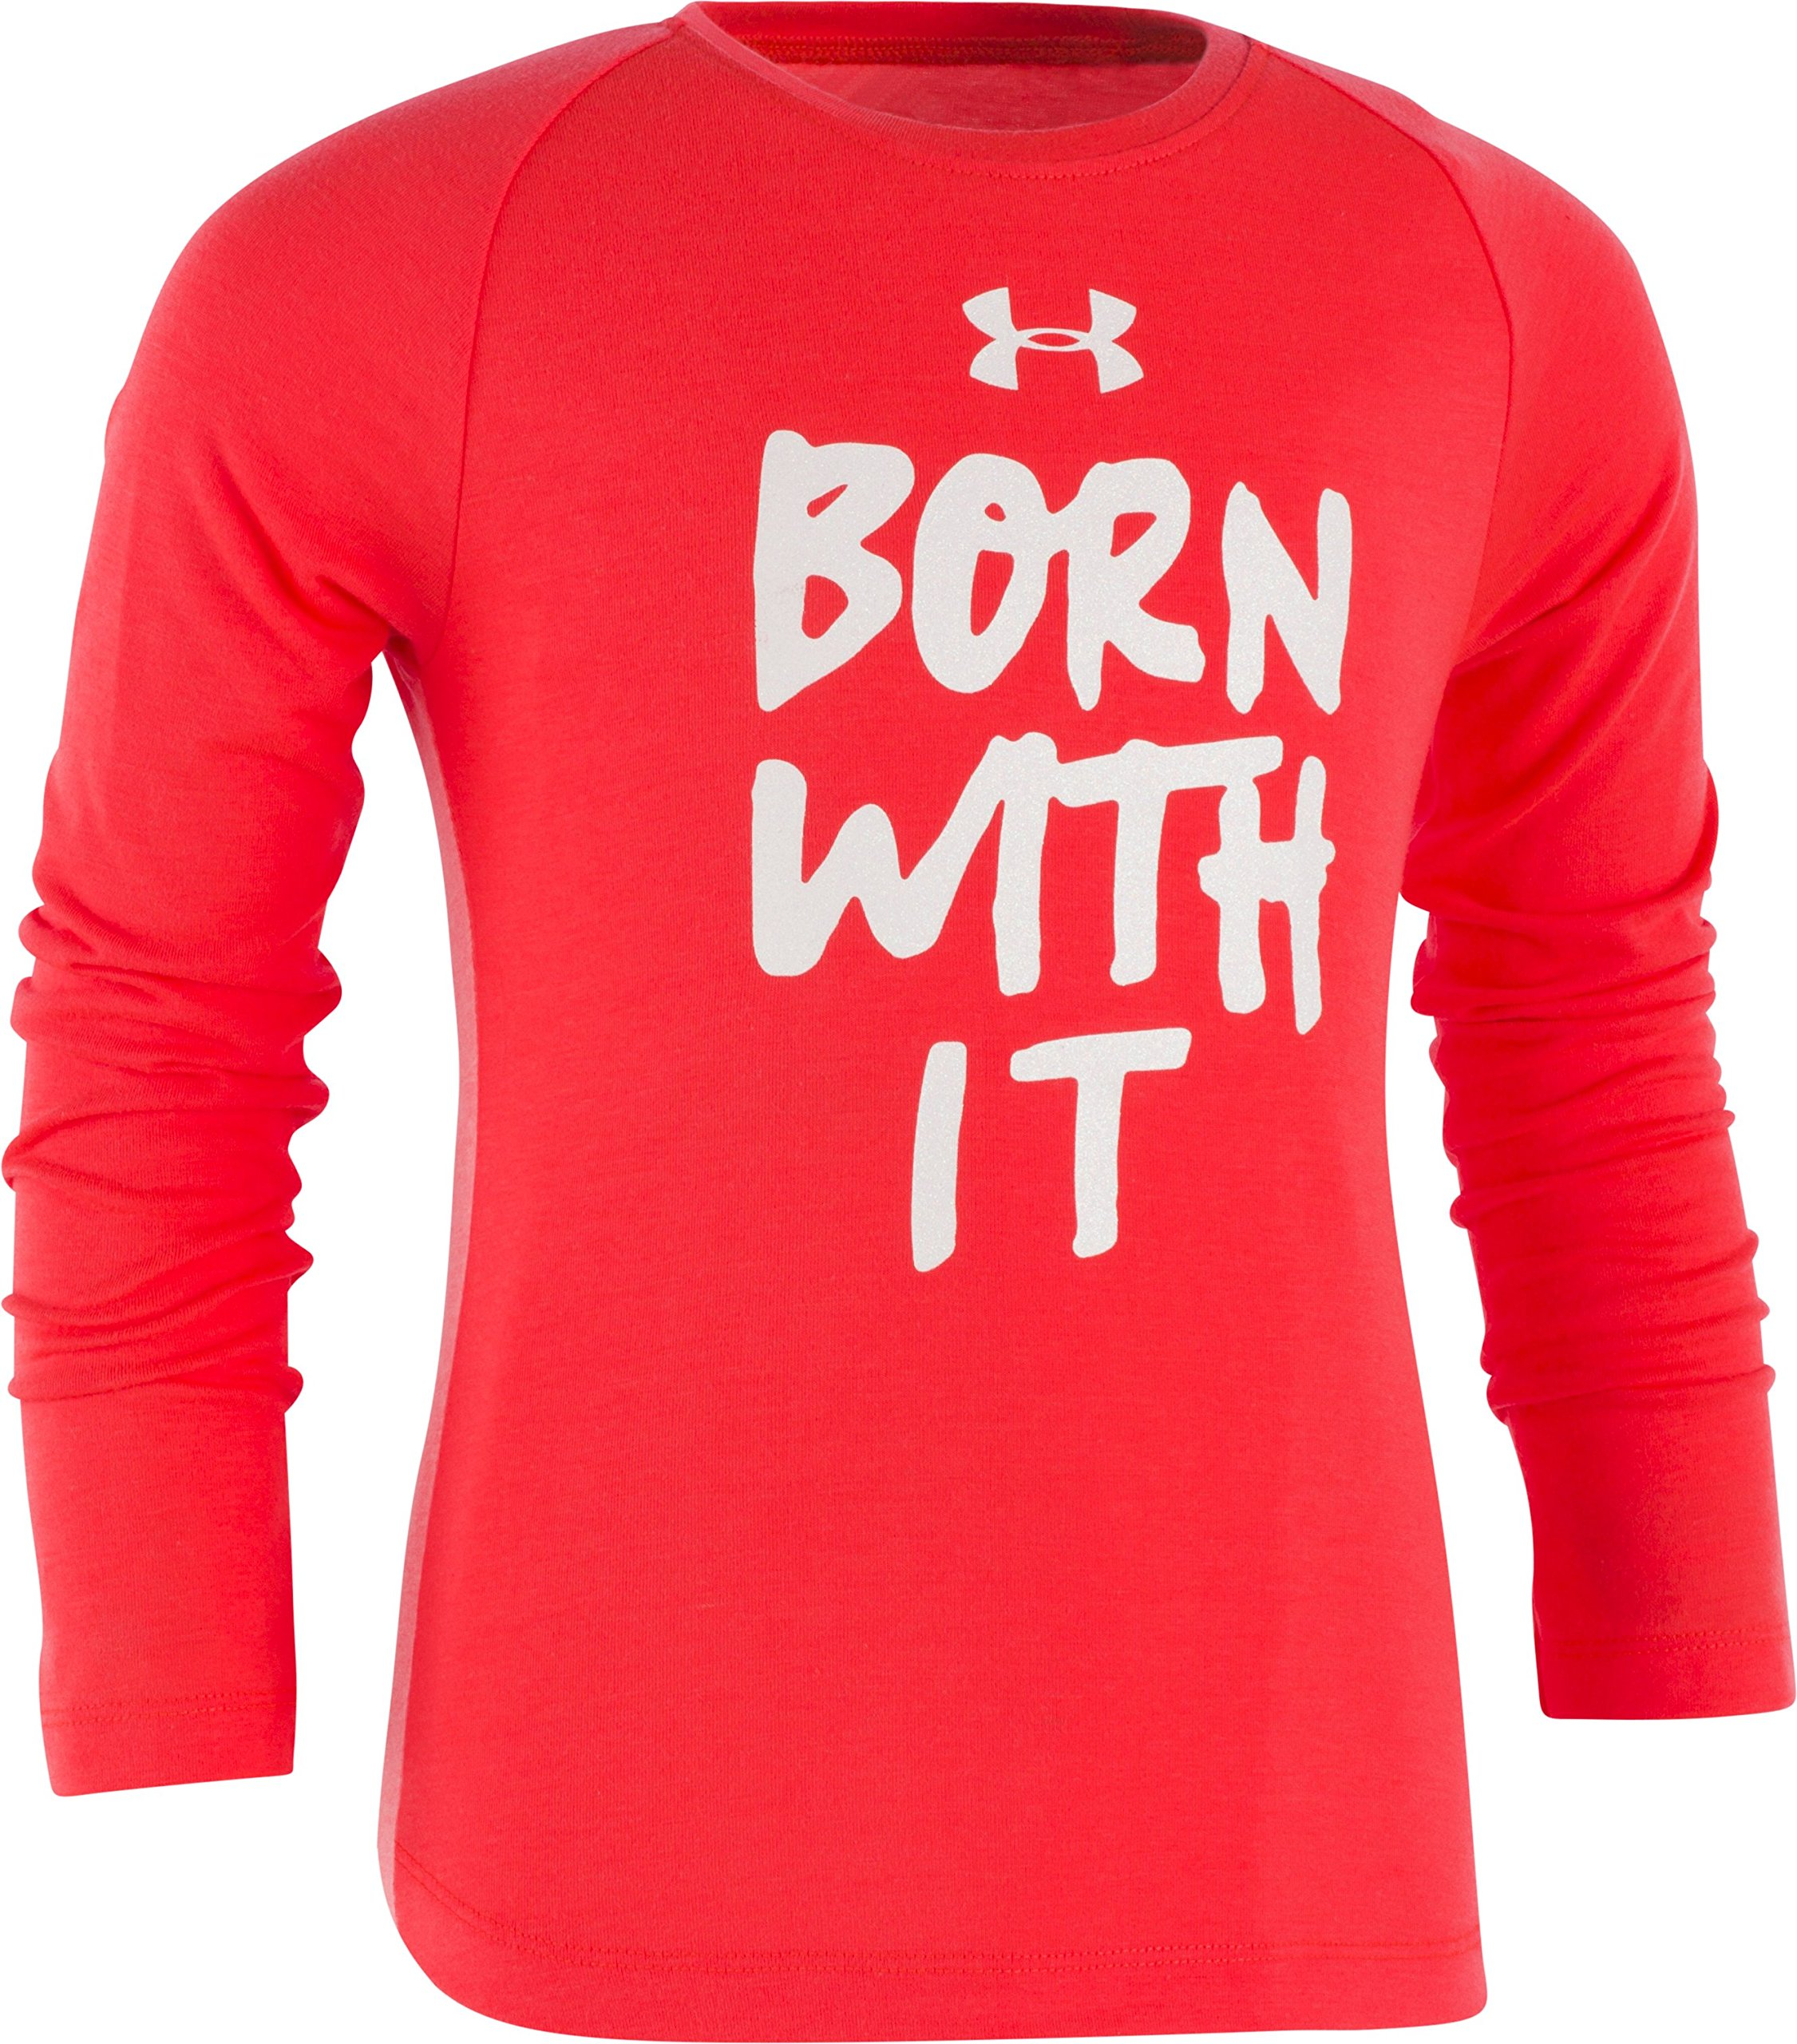 Under Armour Girls' Little Long Sleeve Graphic Tee, Marathon Red, 6